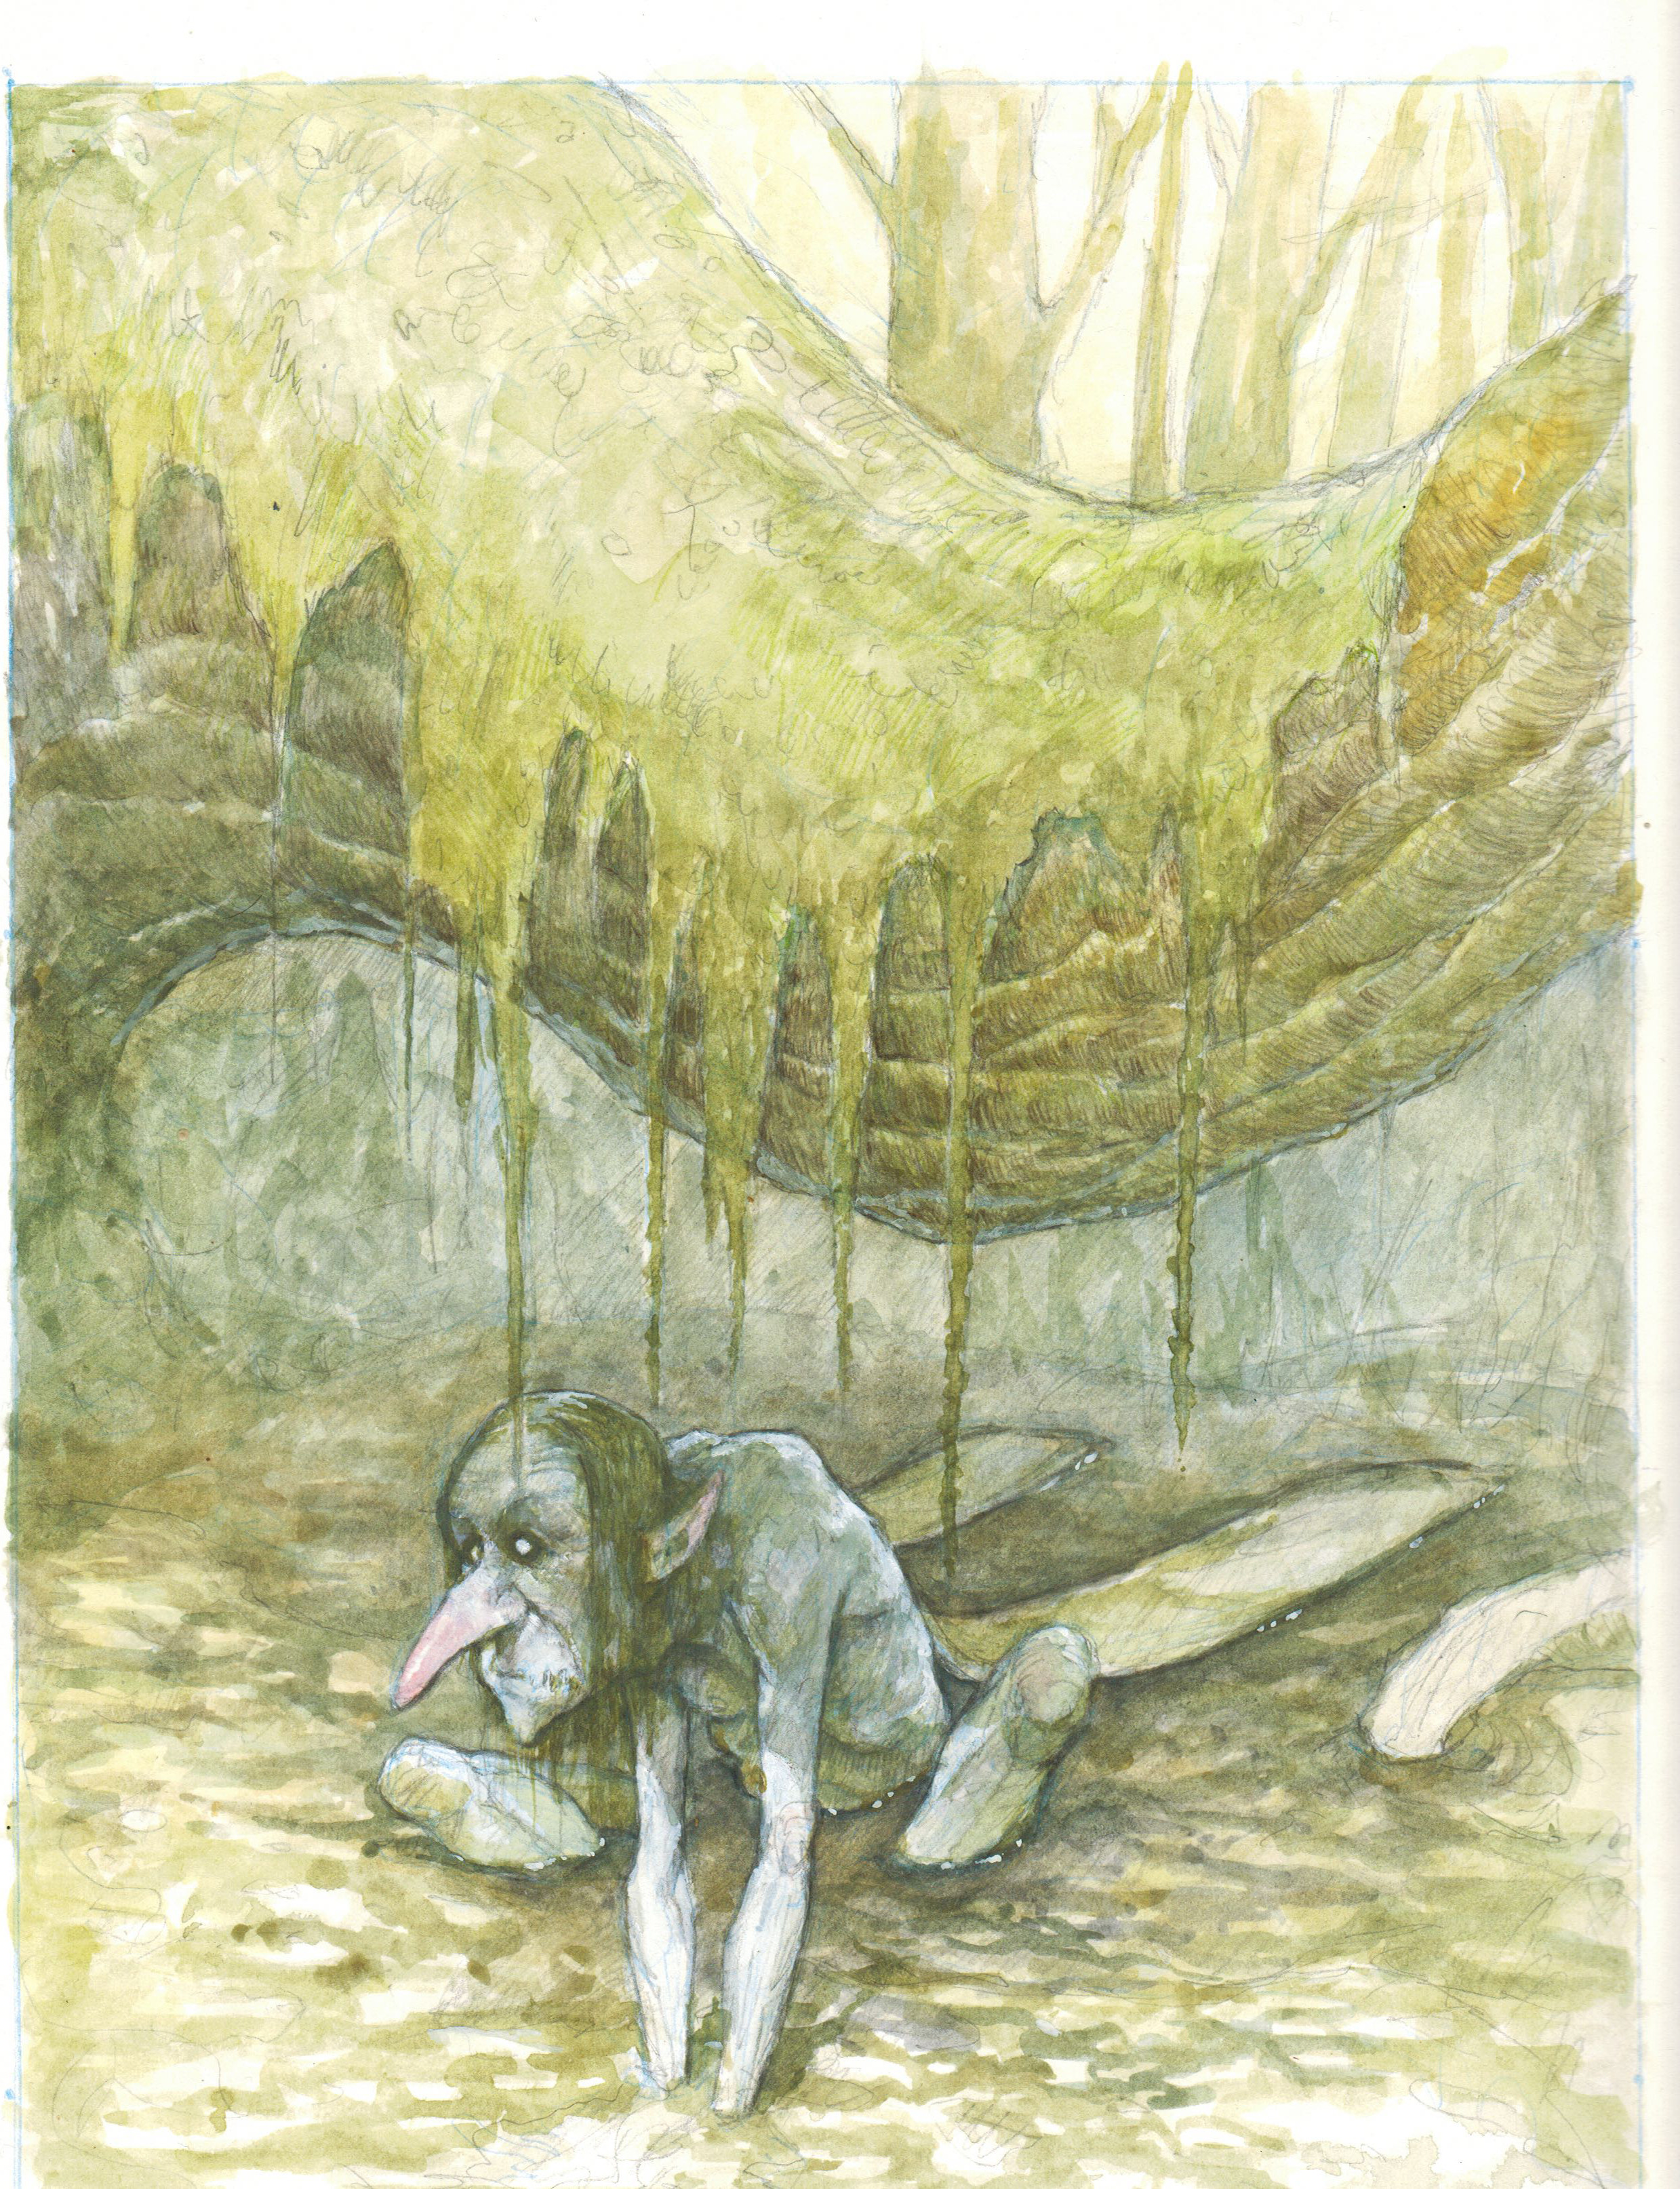 The first version of this image, a failed watercolor, done years ago.